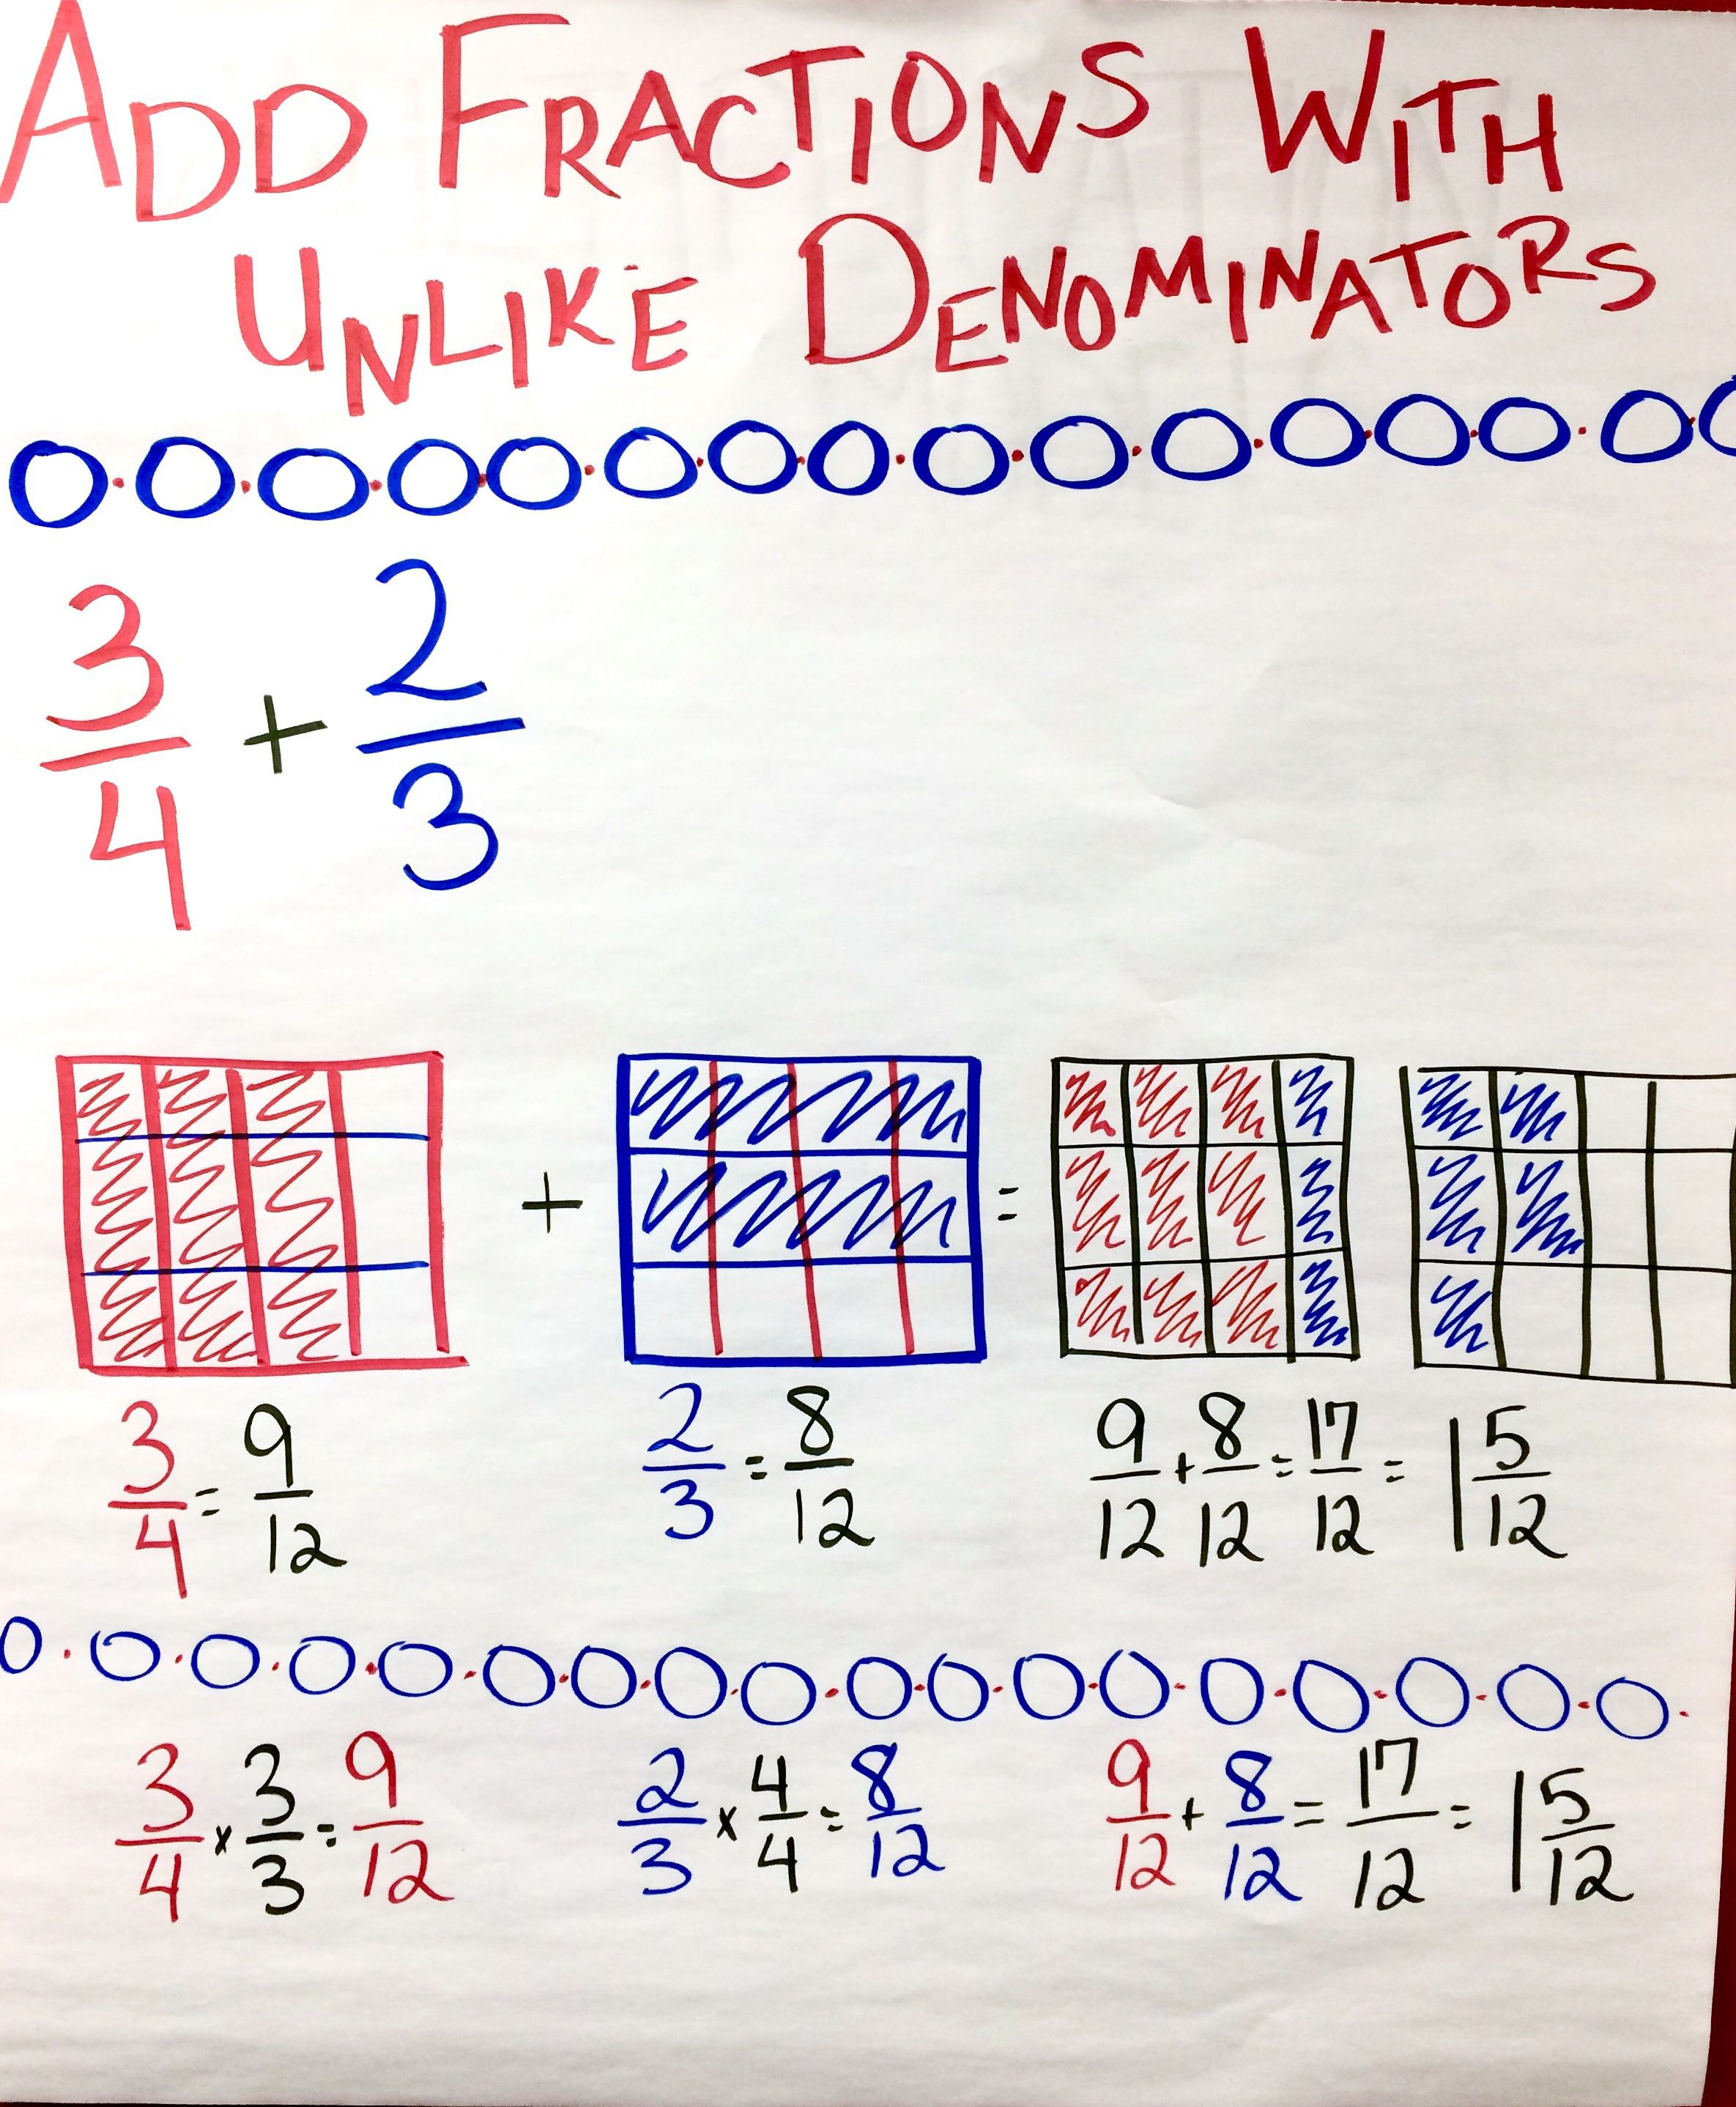 small resolution of 5th Grade Fractions With Unlike Denominators Worksheets   Printable  Worksheets and Activities for Teachers